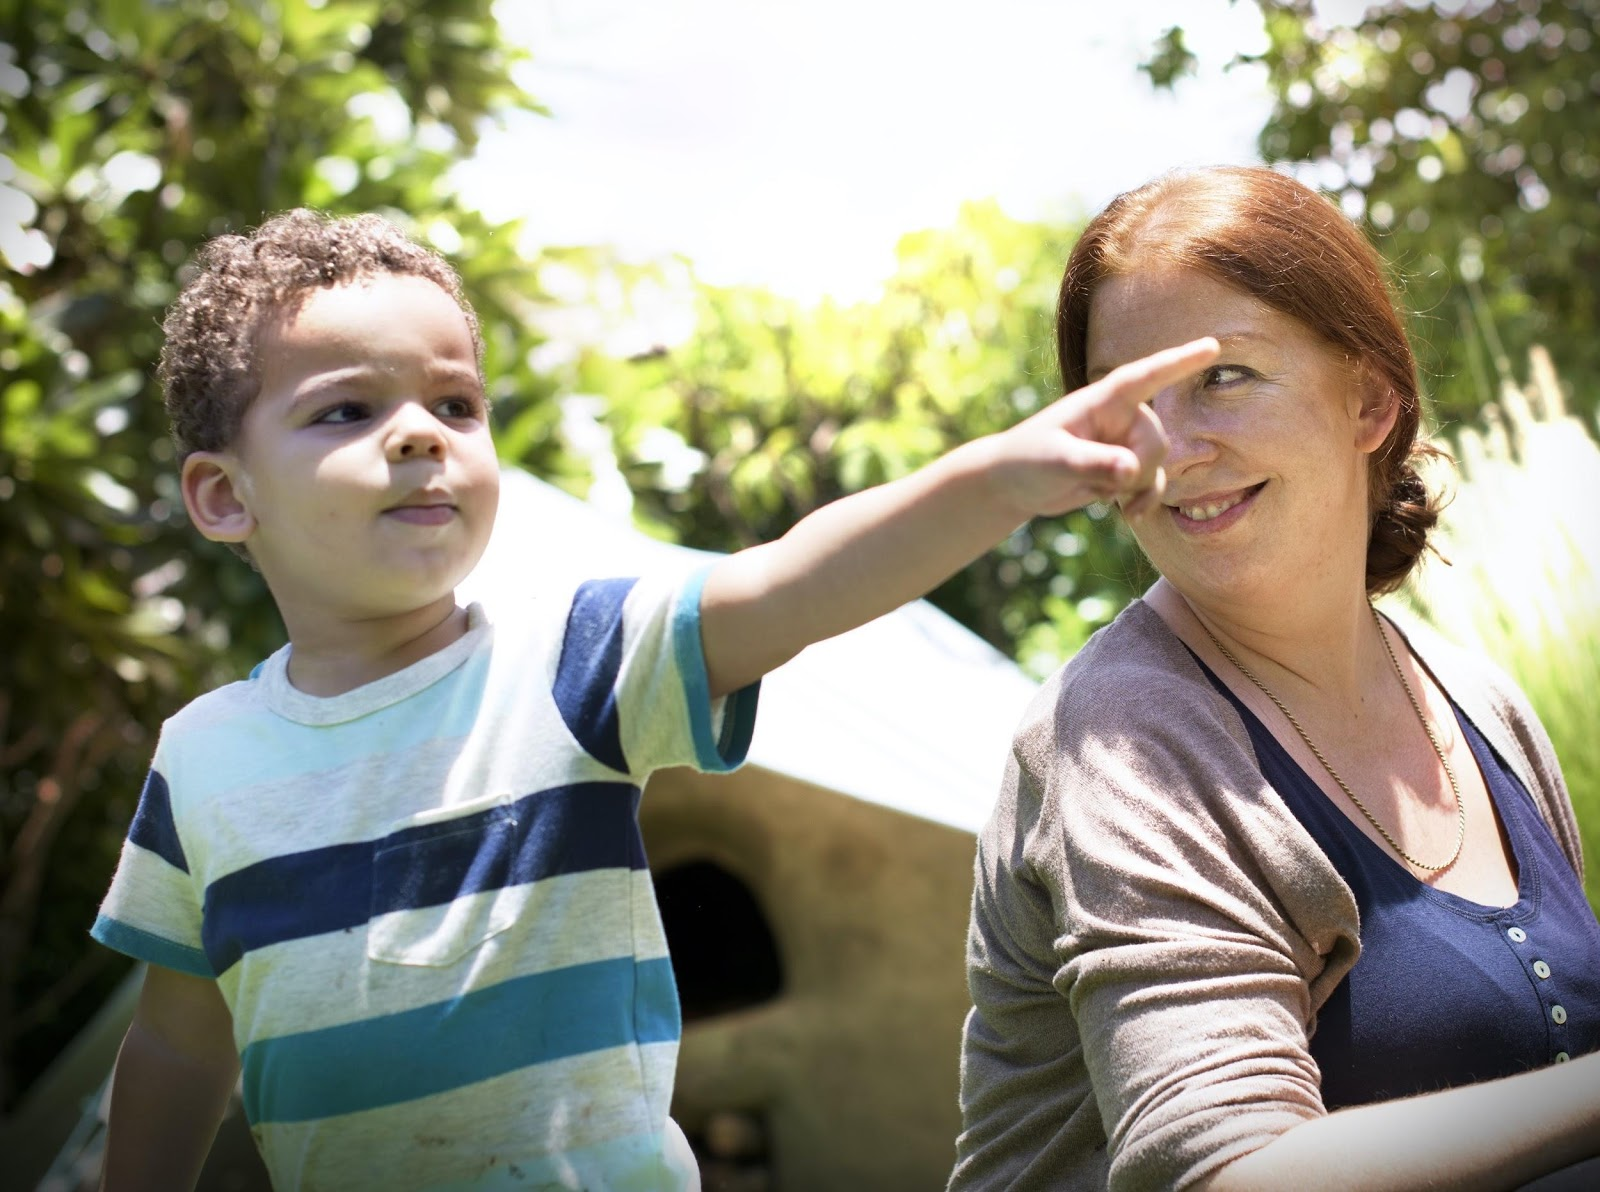 mother looking at child pointing